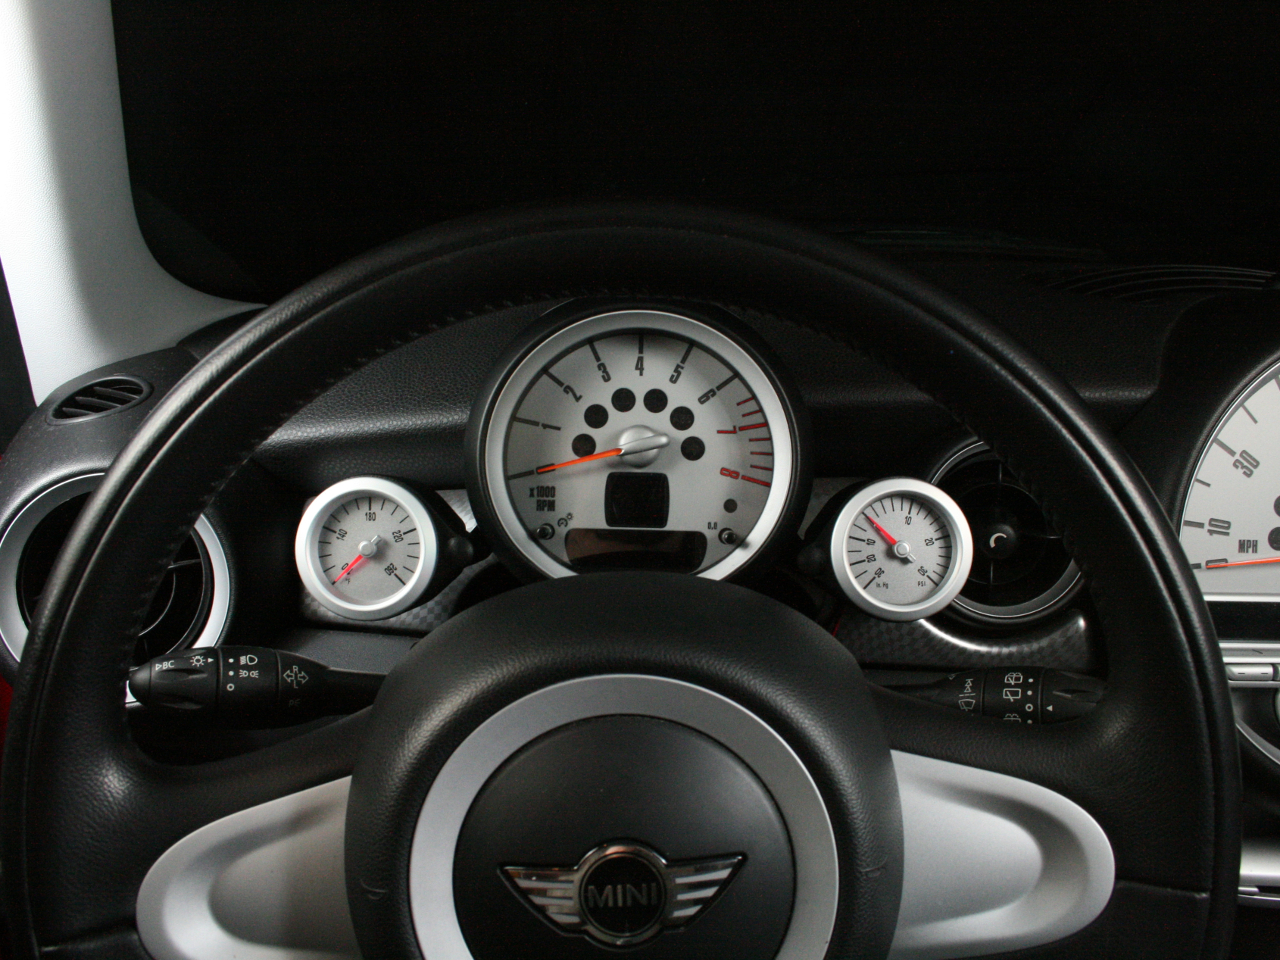 Conventional Gauge Kit For Gen 2 Mini Cooper Tachometer Wiring Diagram Need To Mount Two Gauges On Your But Did You Know Can Have Three Or Even Four The More Better Send Us An Email Find Out How